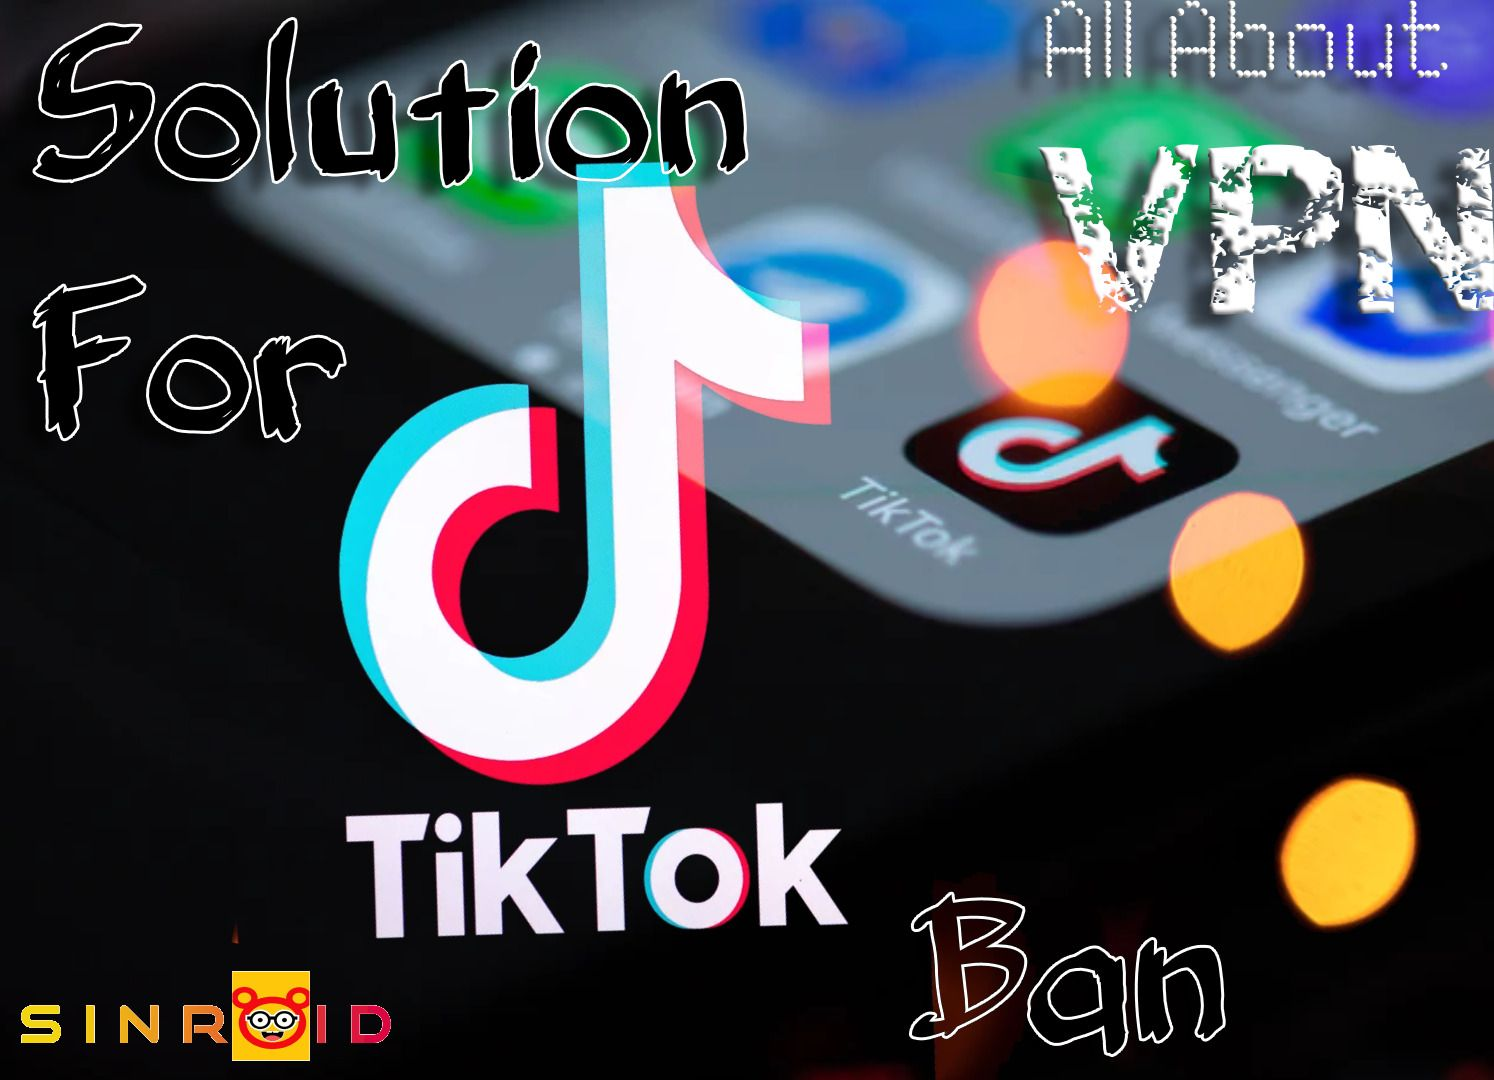 Tiktok Vpn Solution To Tiktok Ban And All About Vpn Mobile Network Operator Solutions Social Media Services